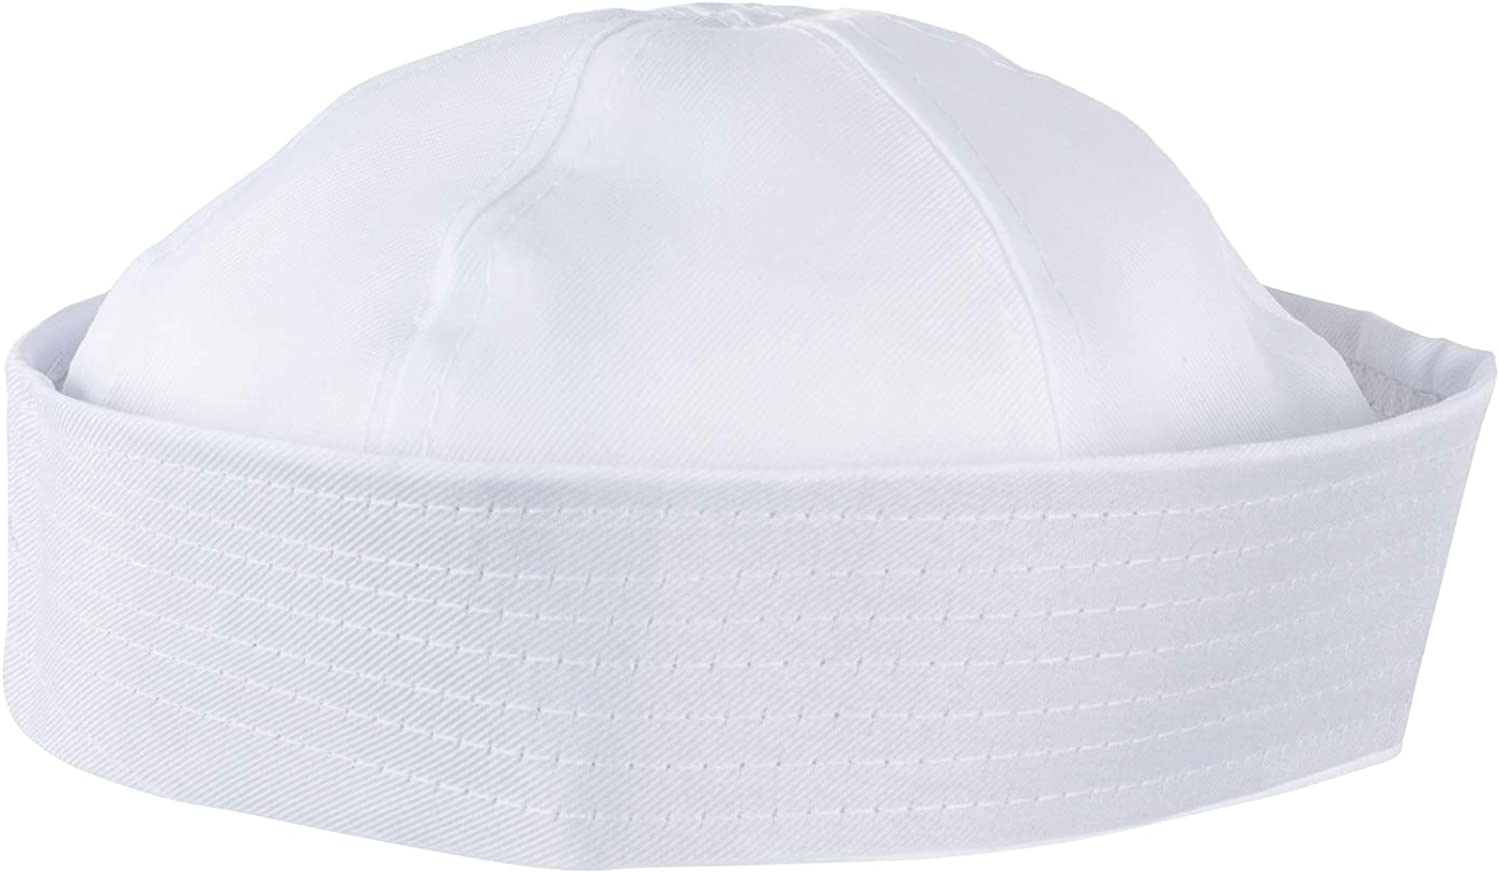 ADULT-NEW-ONE SIZE SAILOR COSTUME BOATING HAT ACCESSORY-WHITE